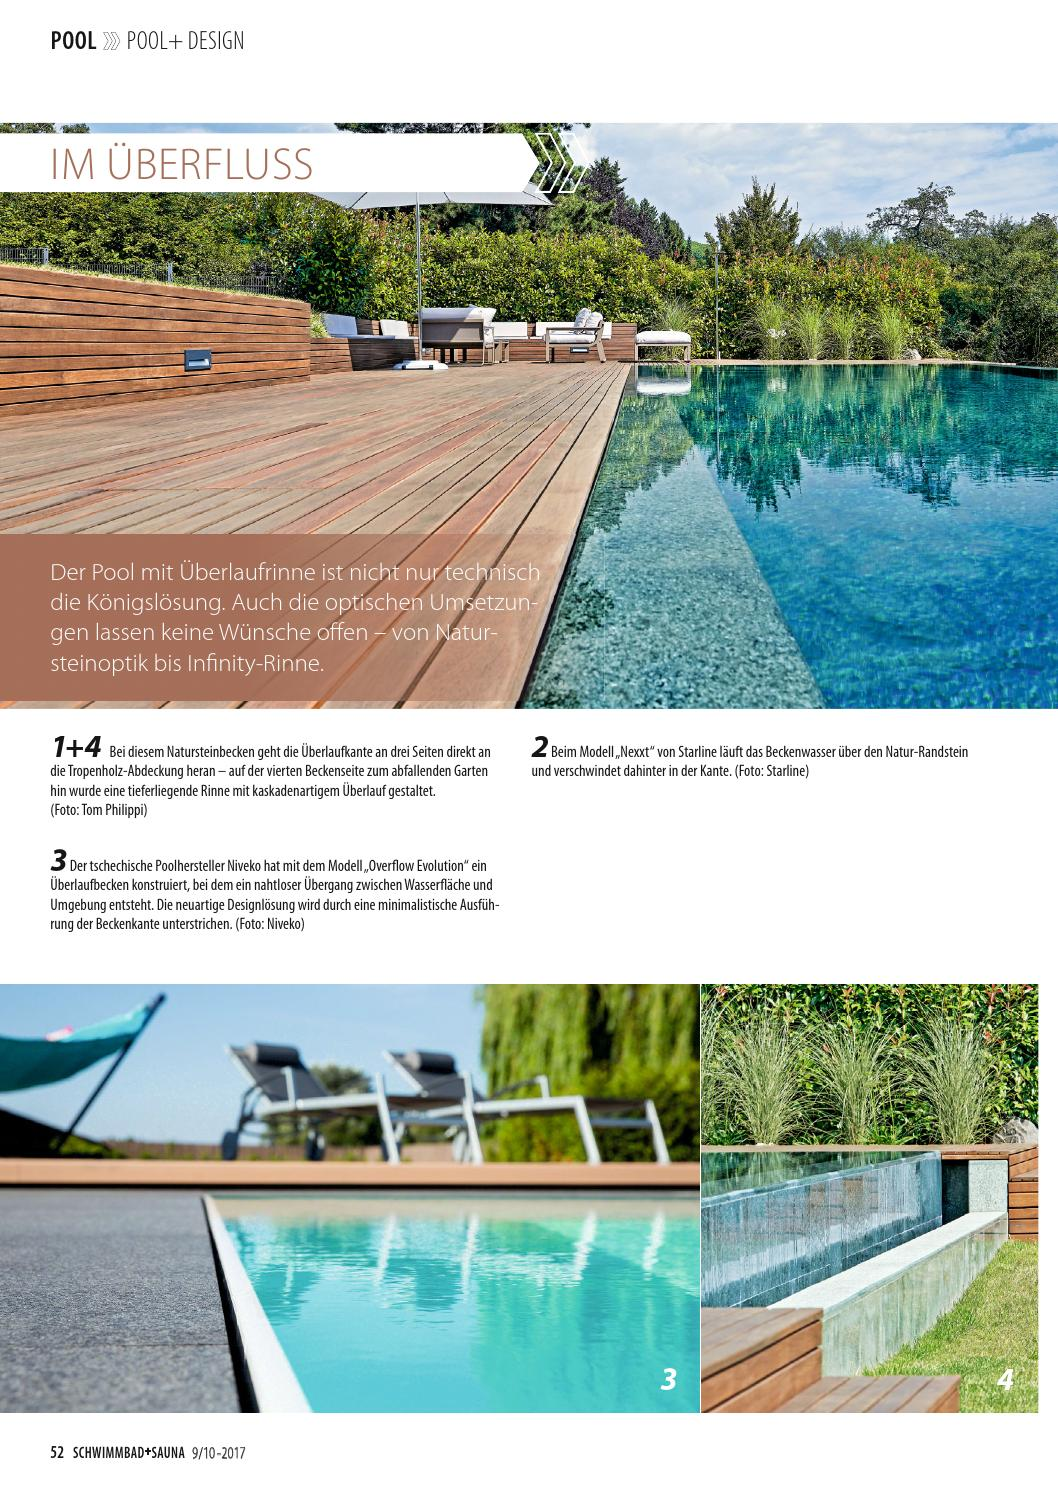 Pool Rund Steinoptik Pool Steinoptik Betonstein Steinoptik With Pool Steinoptik